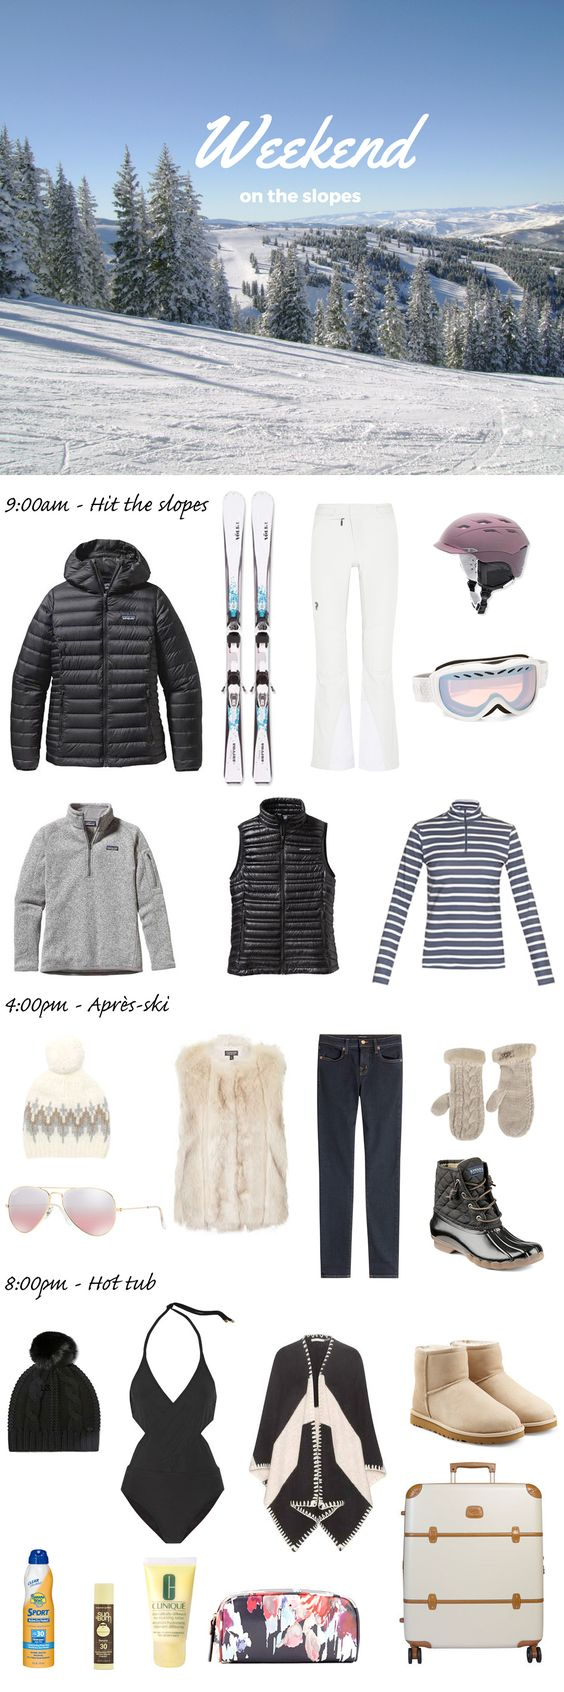 With the fresh air, snow-covered trees, and charming ski towns, it doesn't get much better than a trip to the mountains in the wintertime. Skiing and snowboarding are such fun activities and as a bonus a really great workout. Trying to pack light in the winter is difficult with the bulky sweaters, coats, and boots, but packing for a ski ...